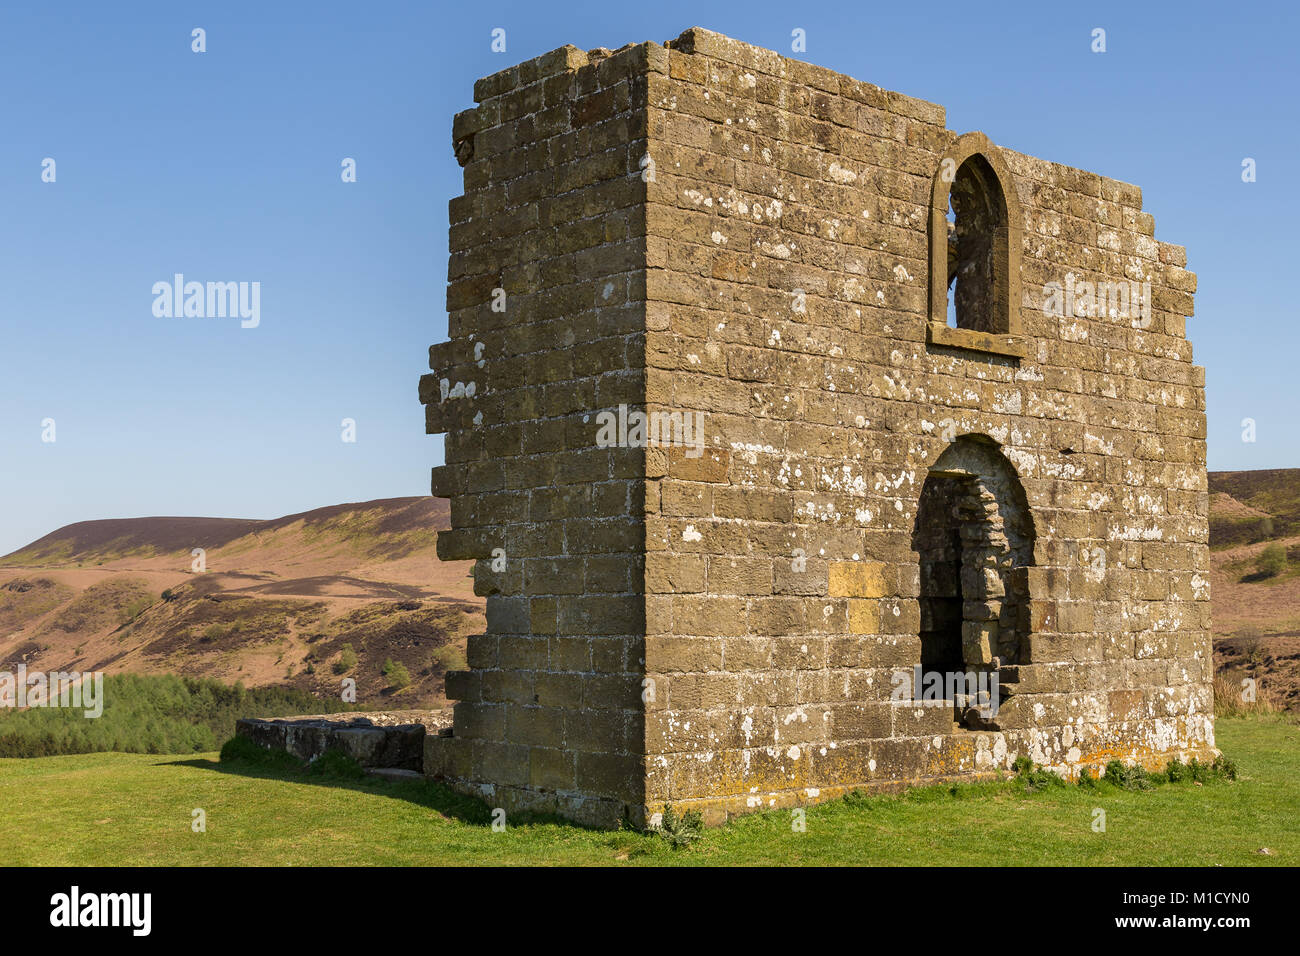 Skelton Tower in the North York Moors National Park near Levisham, North Yorkshire, England, UK - Stock Image